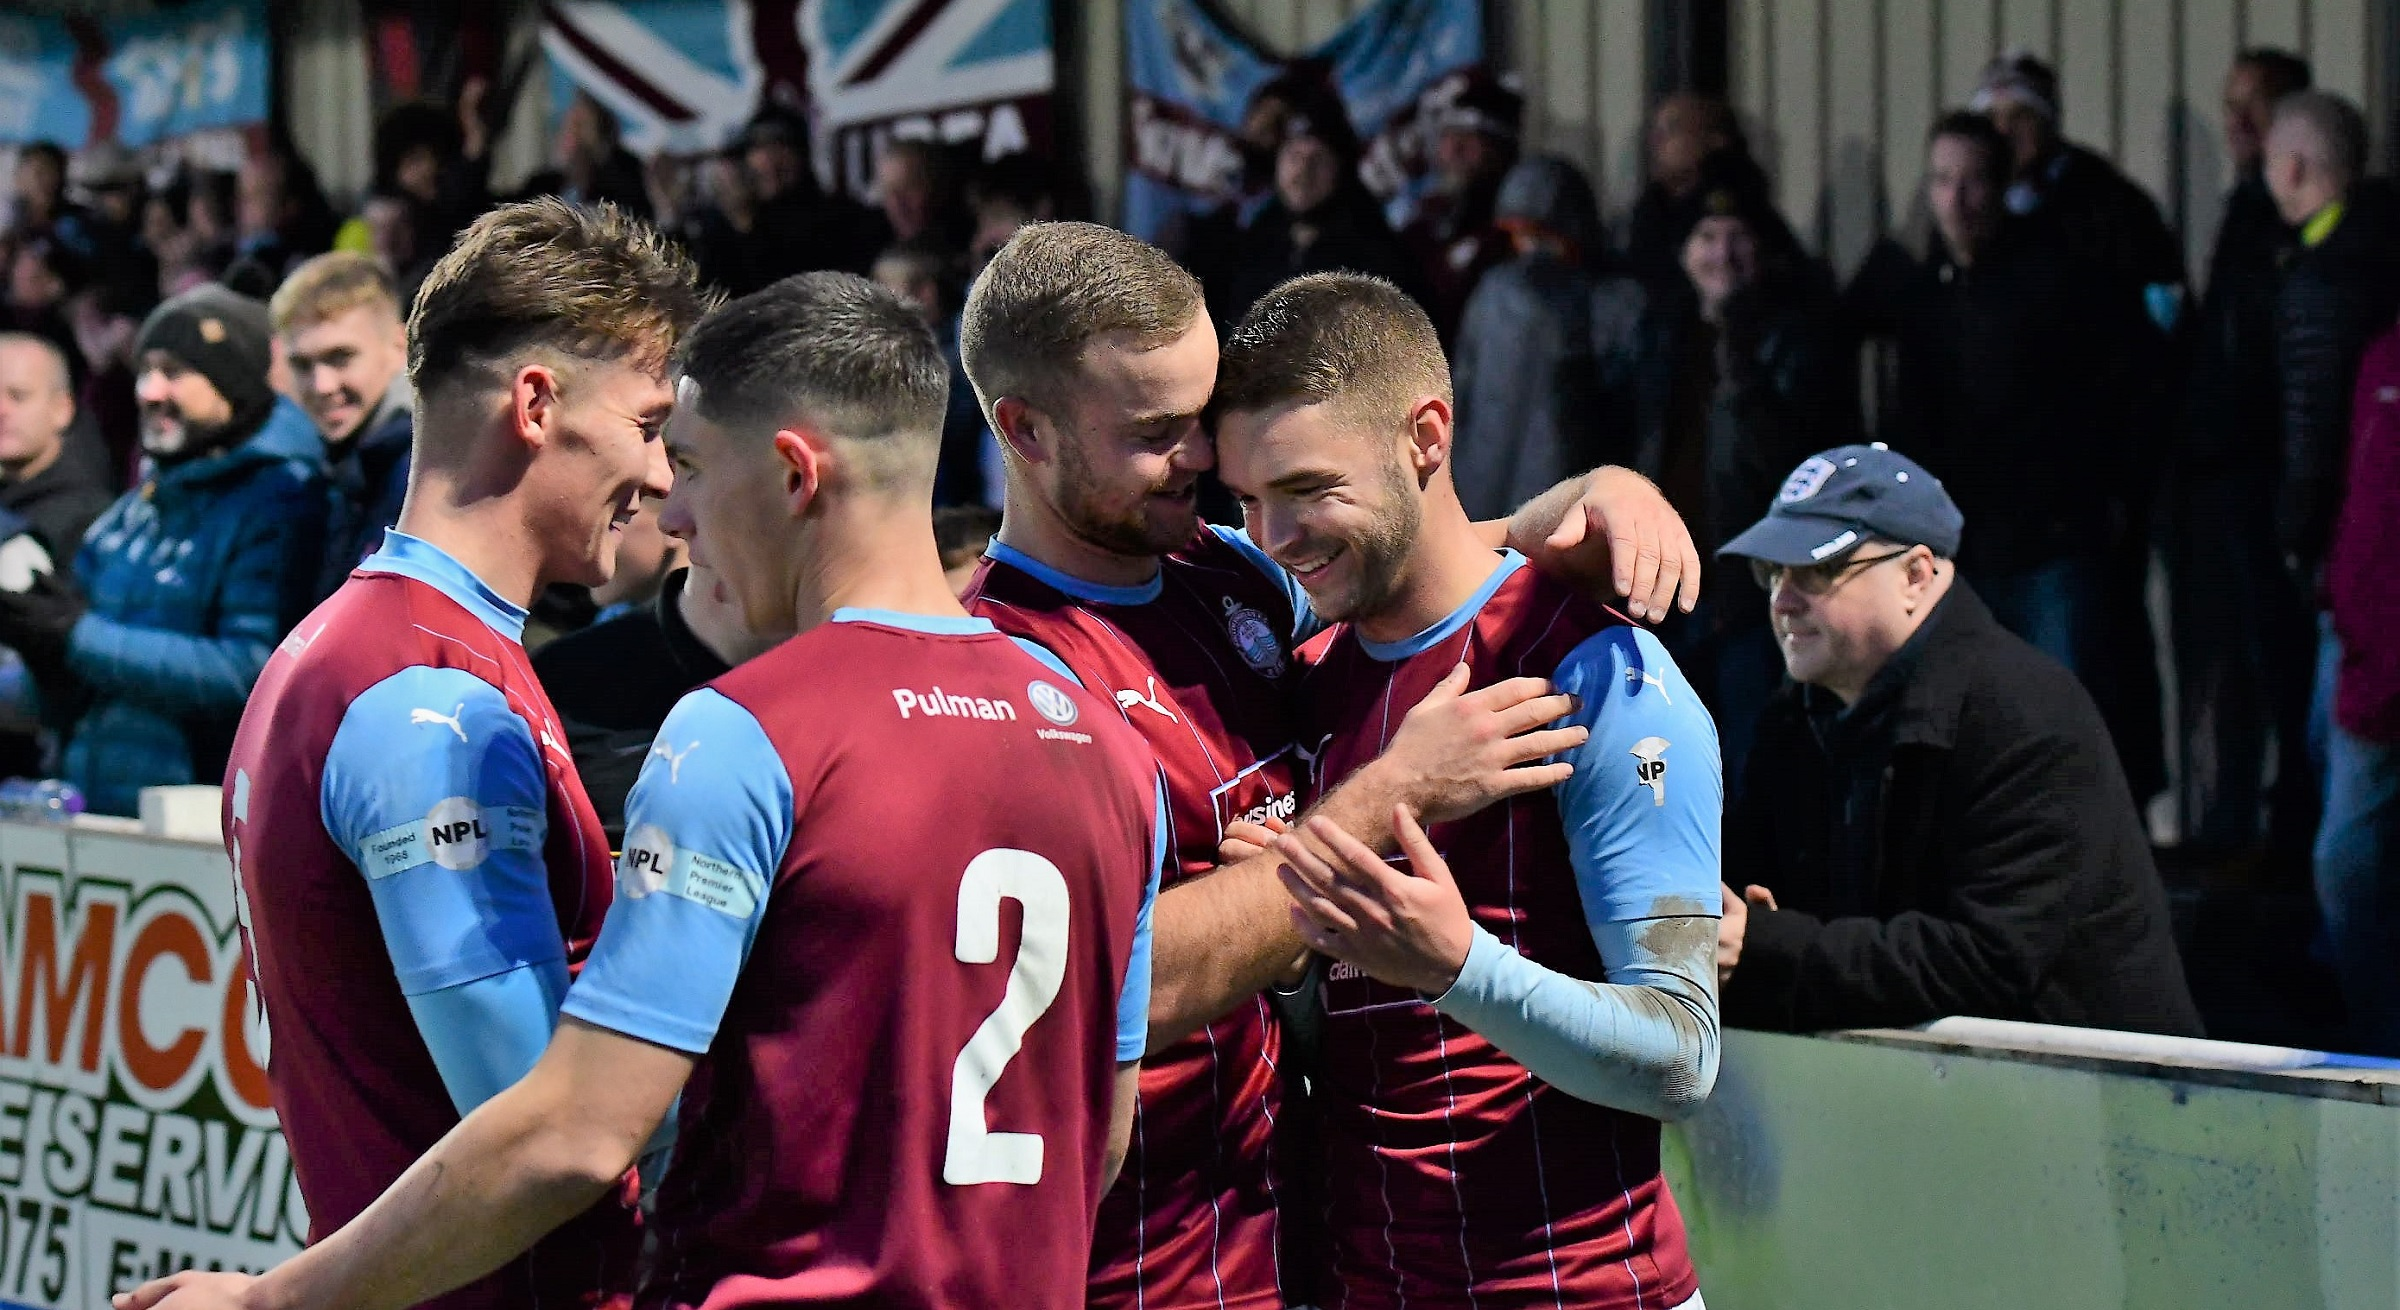 Match Preview: South Shields vs Morpeth Town, BetVictor Northern Premier Division